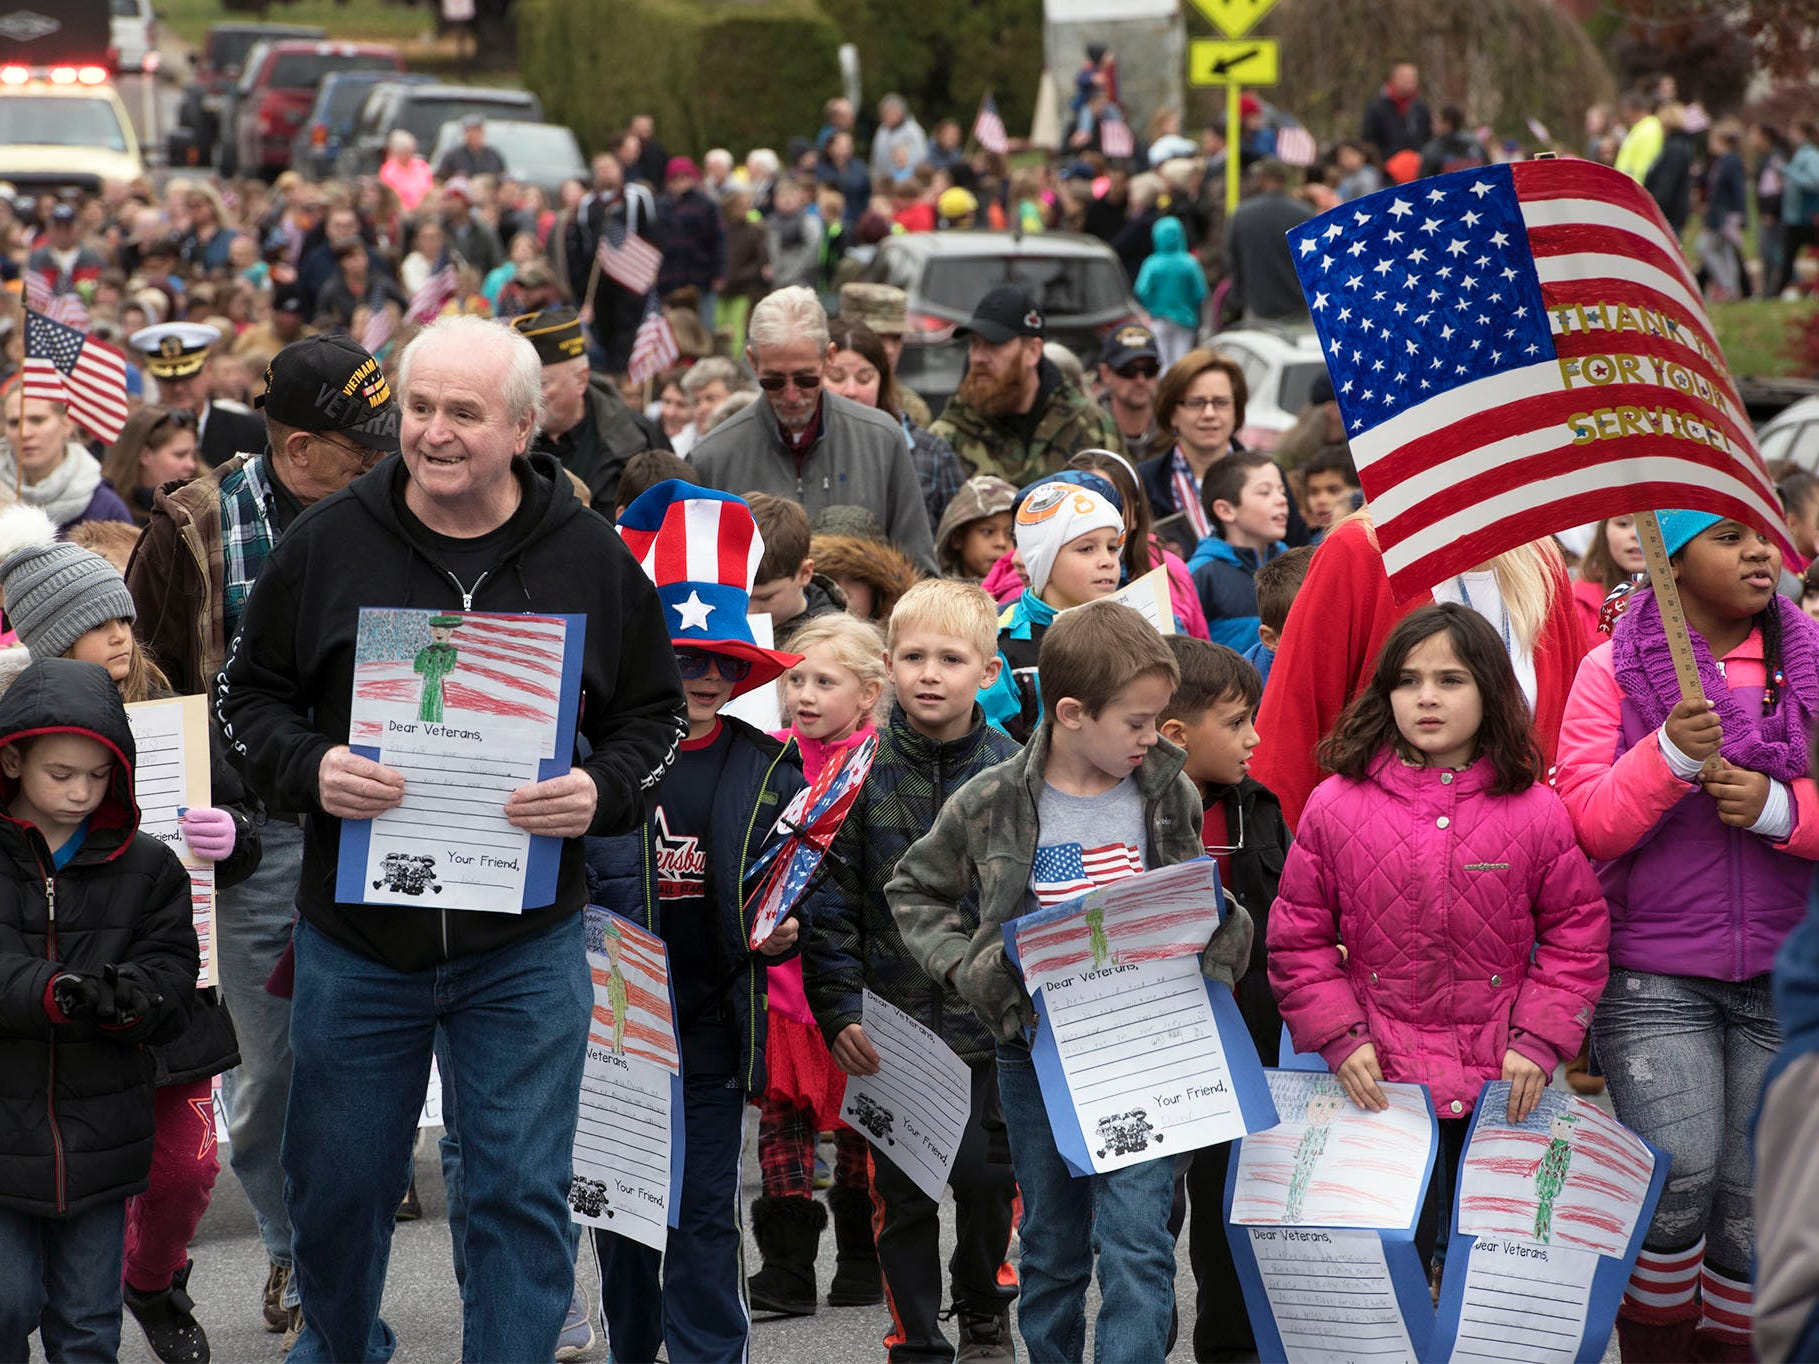 A crowd of veterans and students walk together during a Veterans Day Parade sponsored by James Burd Elementary School, Shippensburg. Last year, Burd hosted its own parade because the Shippensburg parade was canceled. Now the event is becoming a tradition.